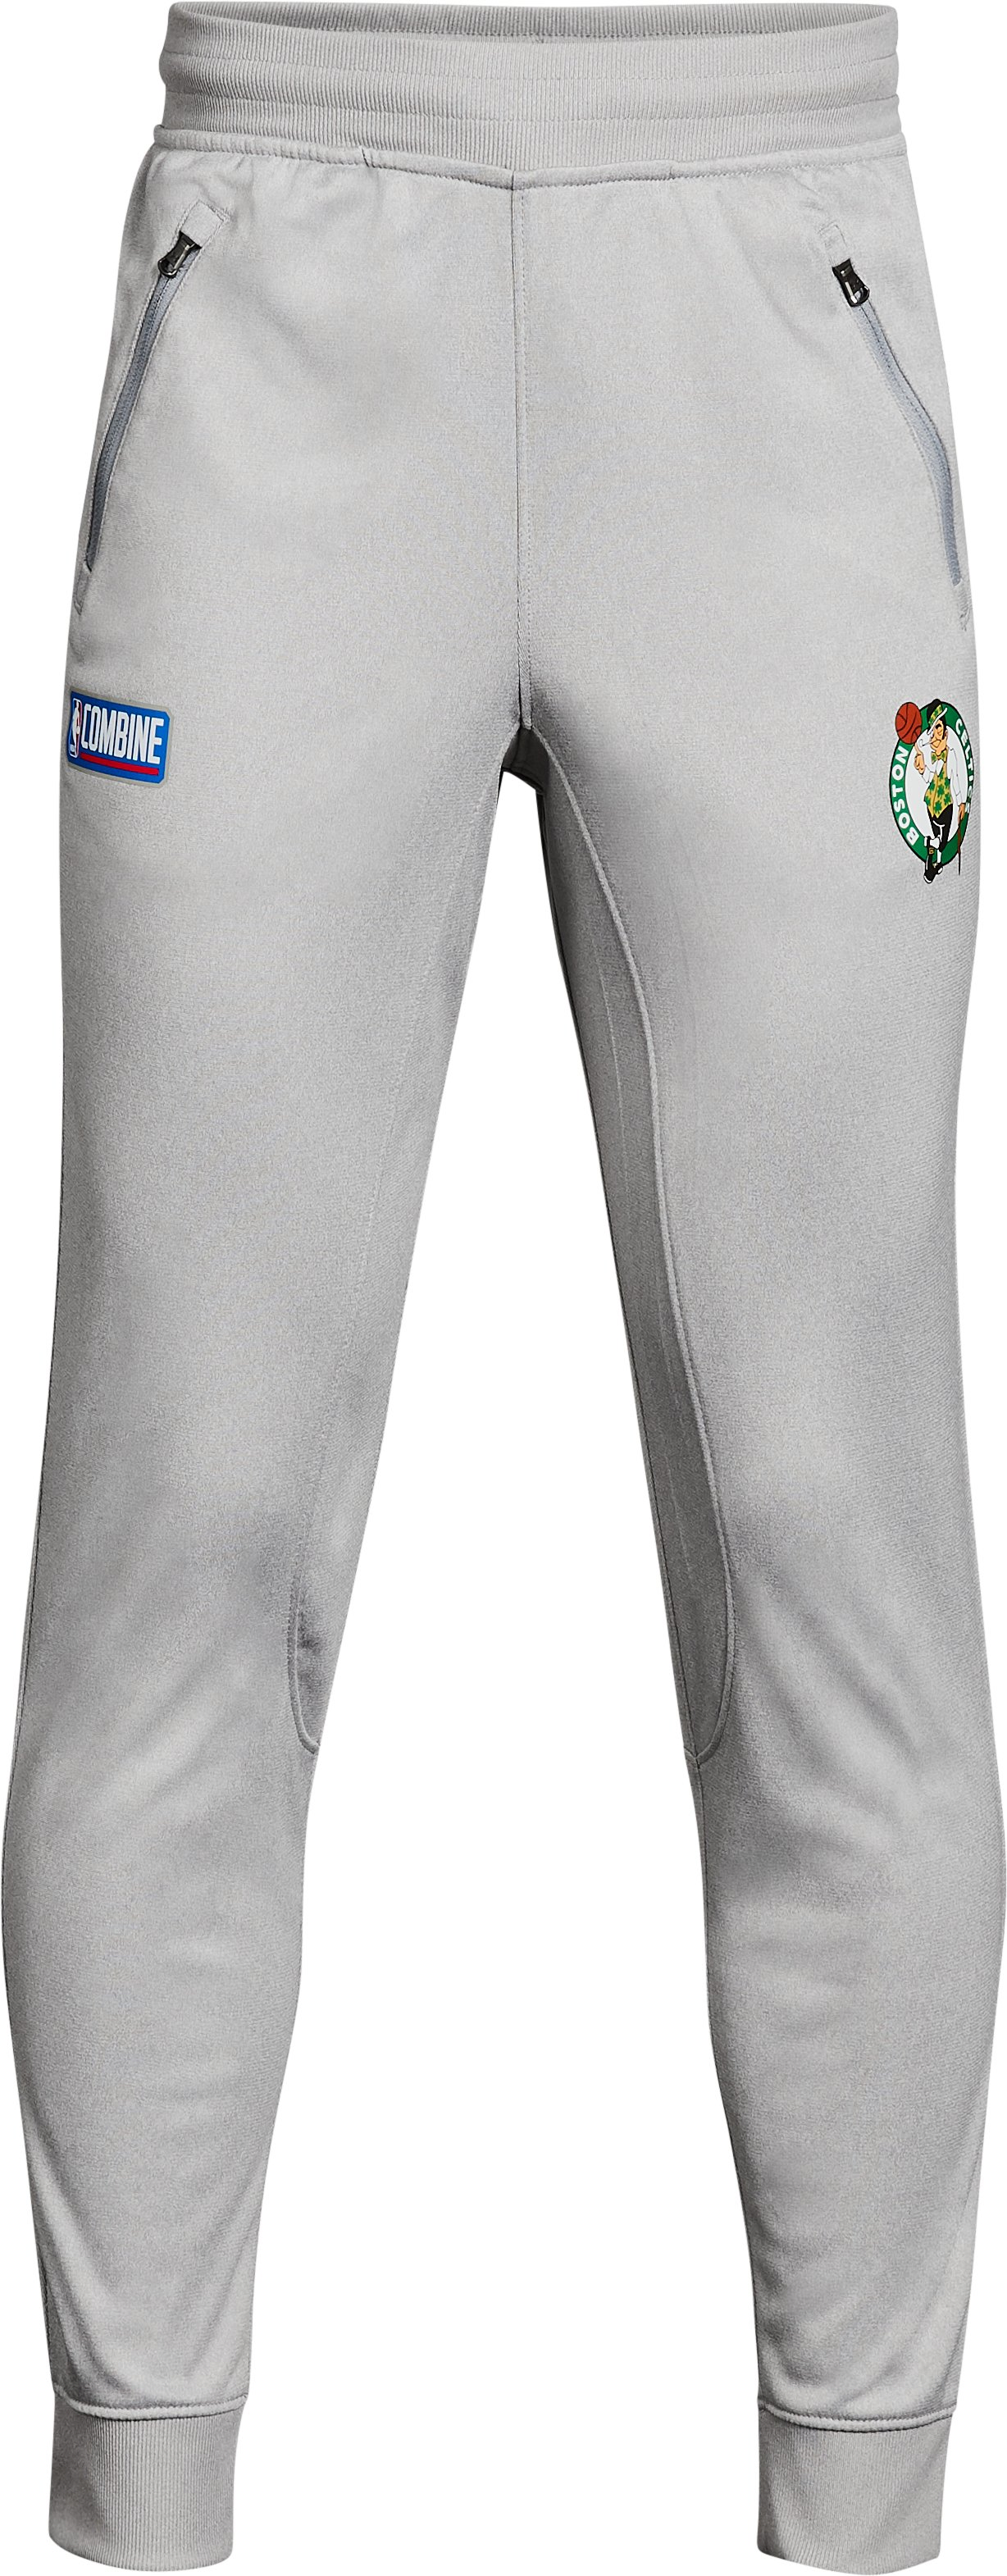 Boys' NBA Combine UA Pennant Joggers, NBA_BOSTON CELTICS_TRUE GREY HEATHER, undefined